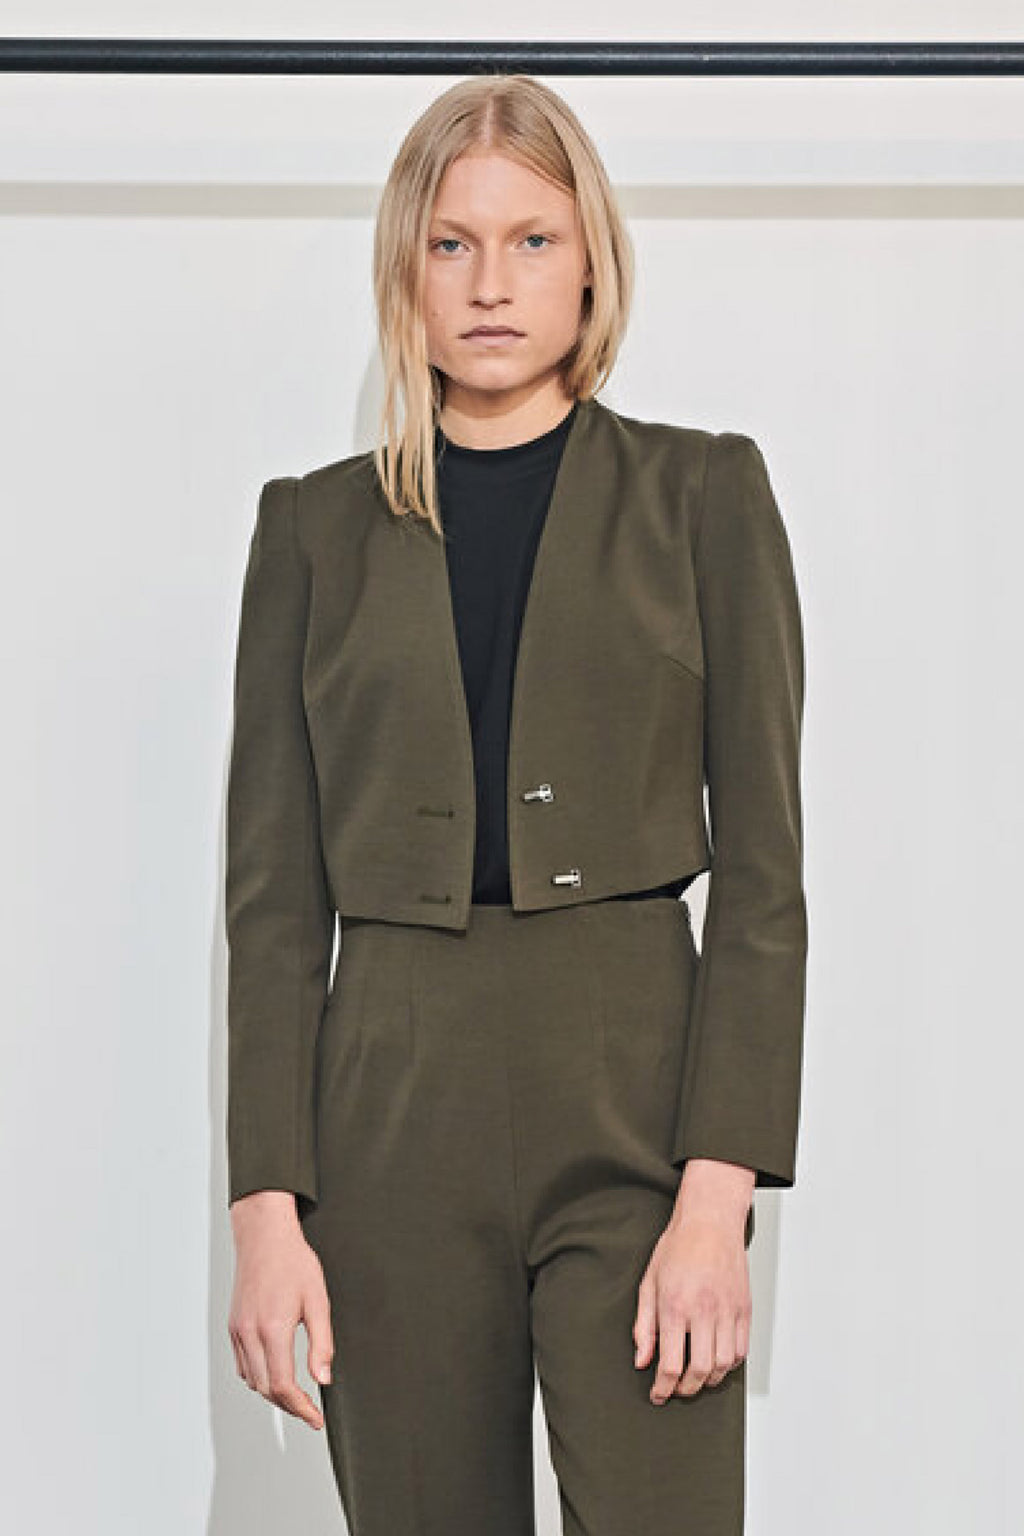 ICONIC CROP JACKET in MOSS